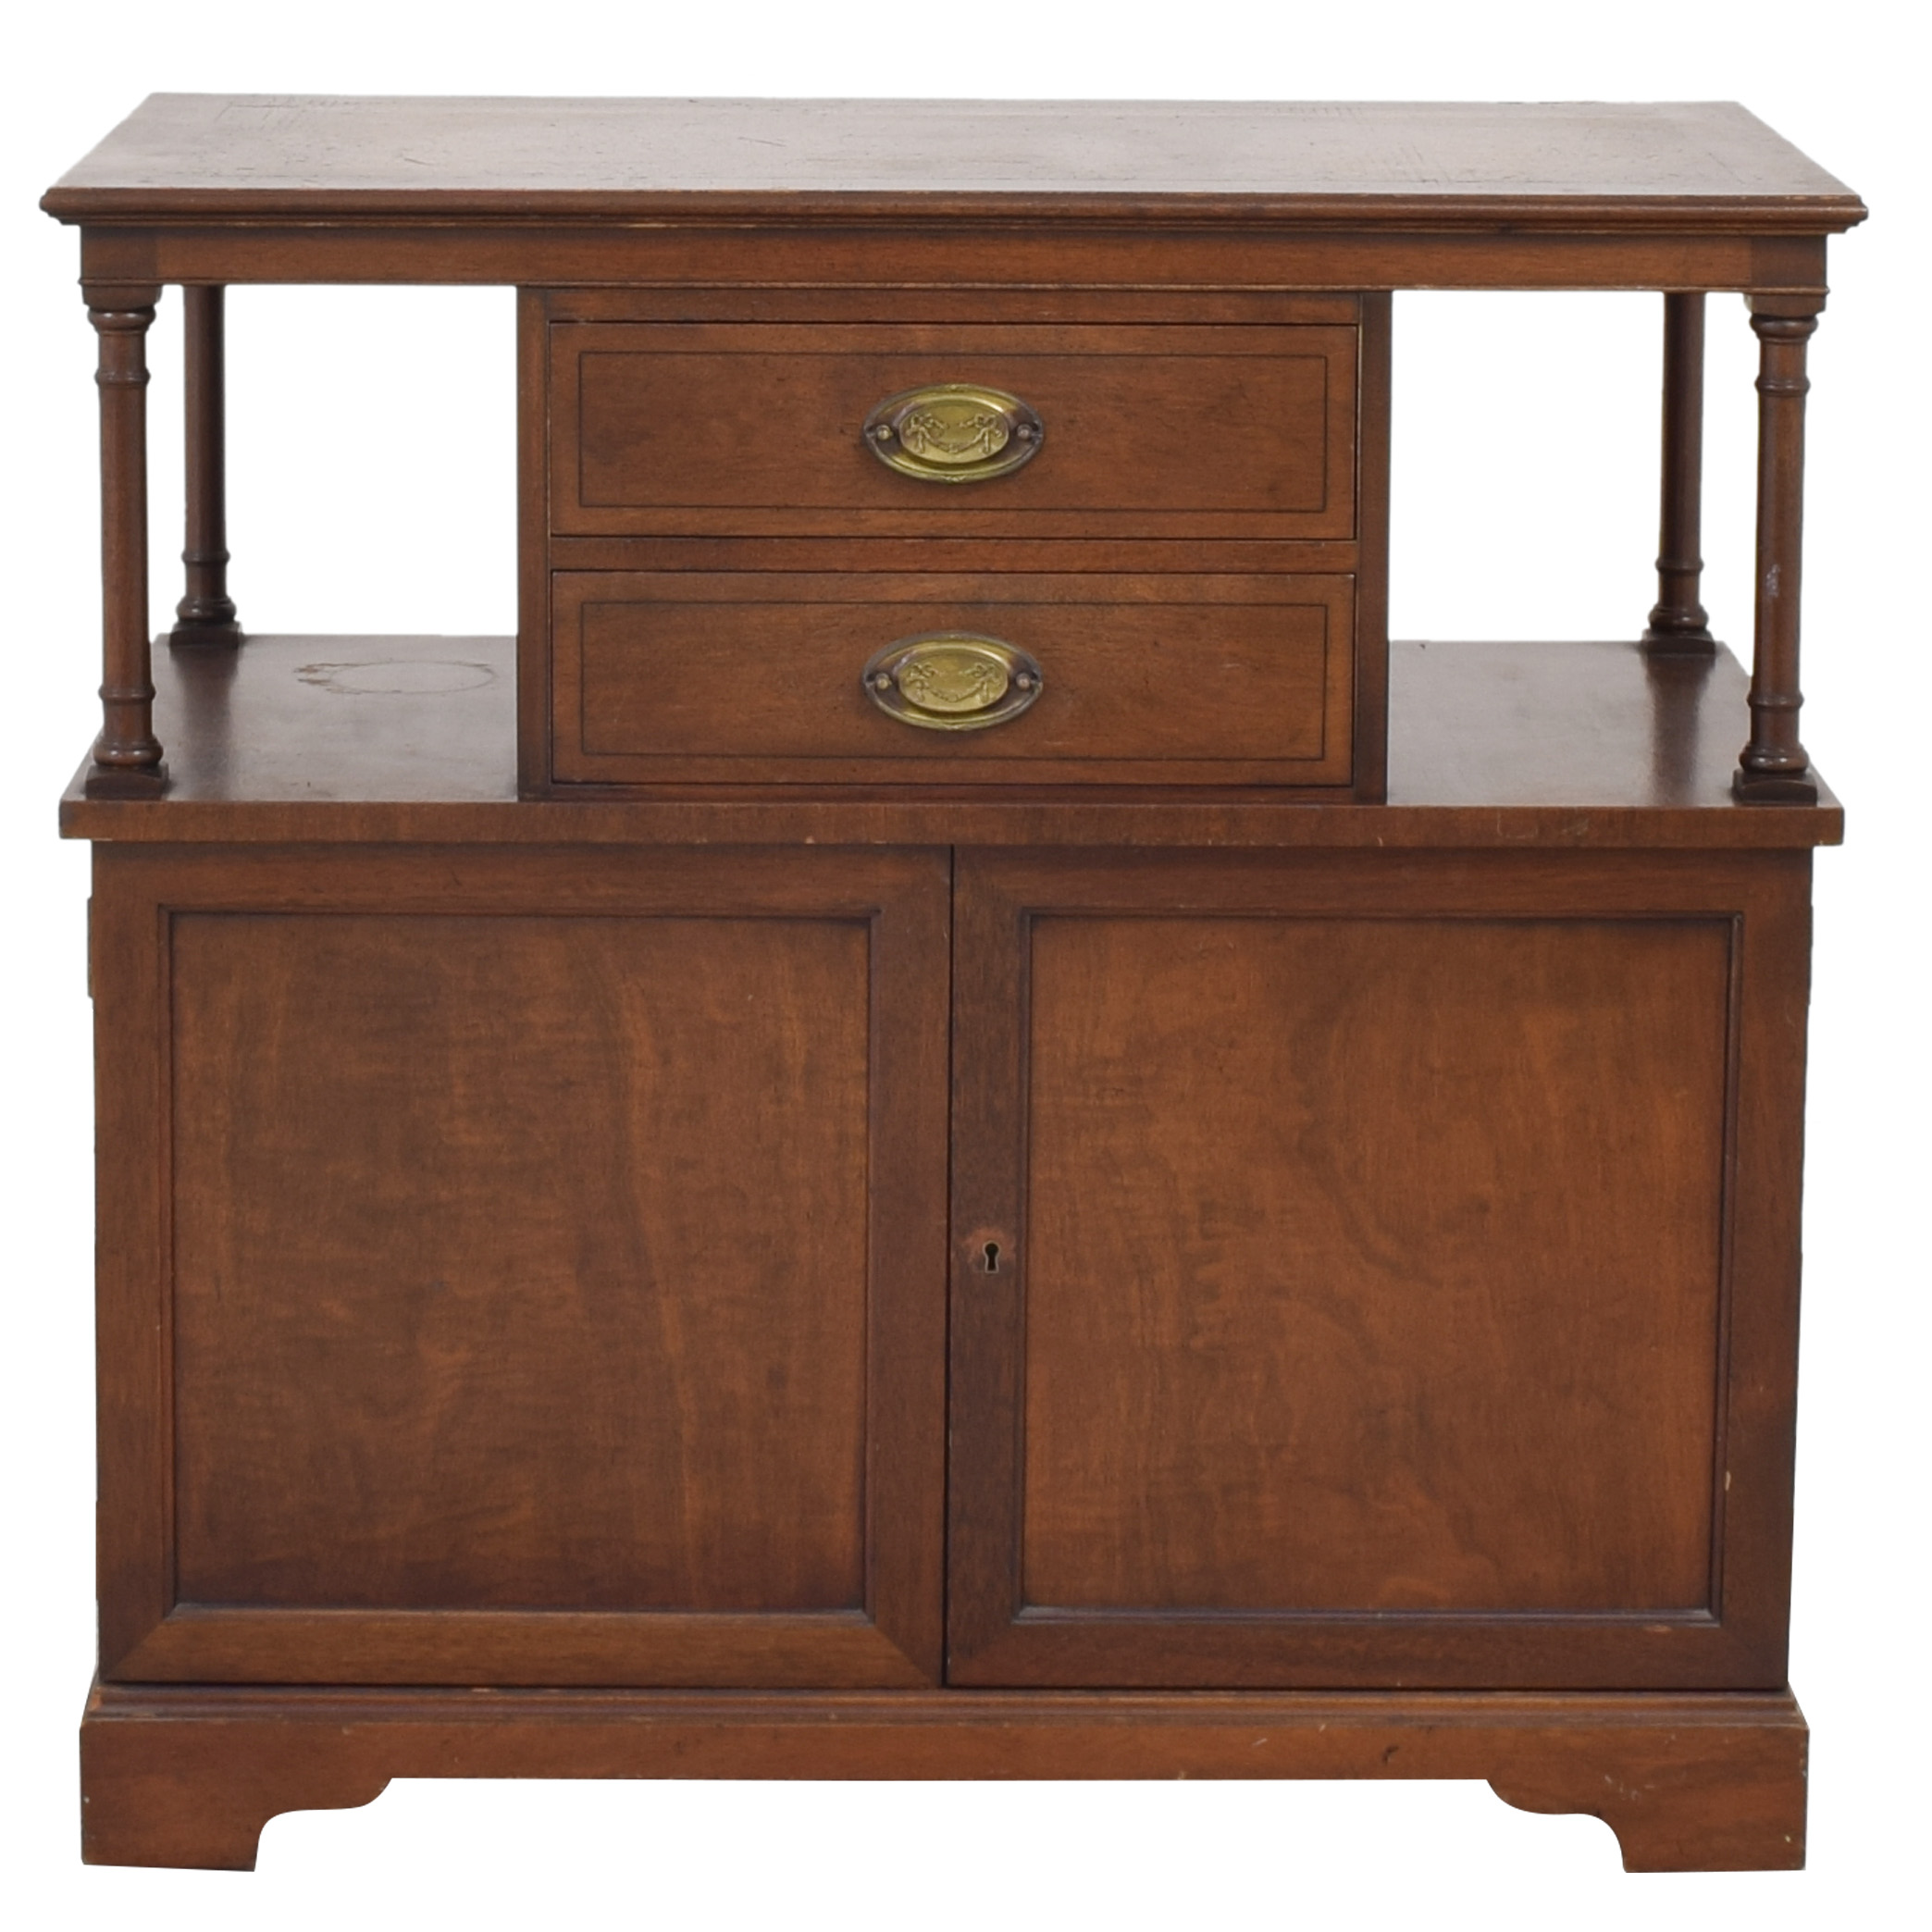 Henredon Furniture Henredon Furniture Extending Cabinet Cabinets & Sideboards